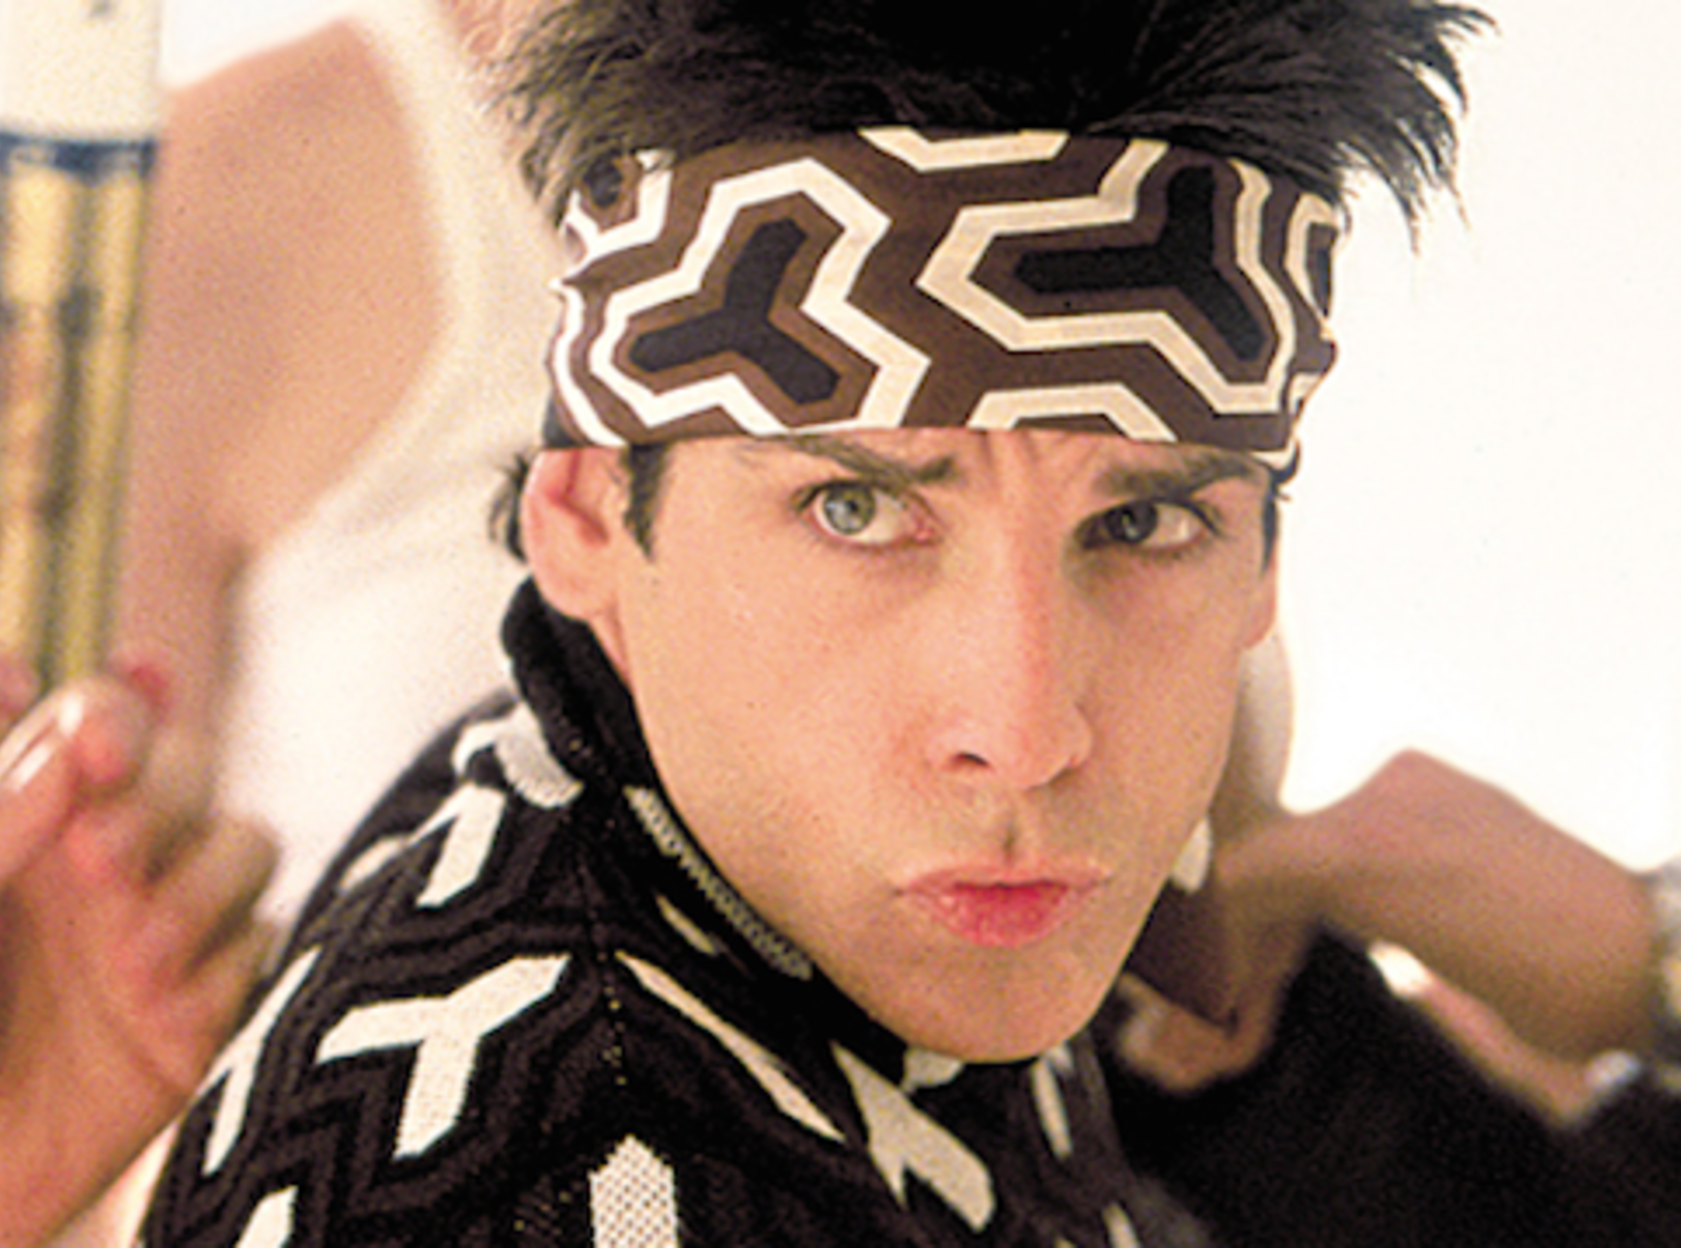 zoolander primary e1622035419152 Films That Were Censored For Entirely Unexpected Reasons